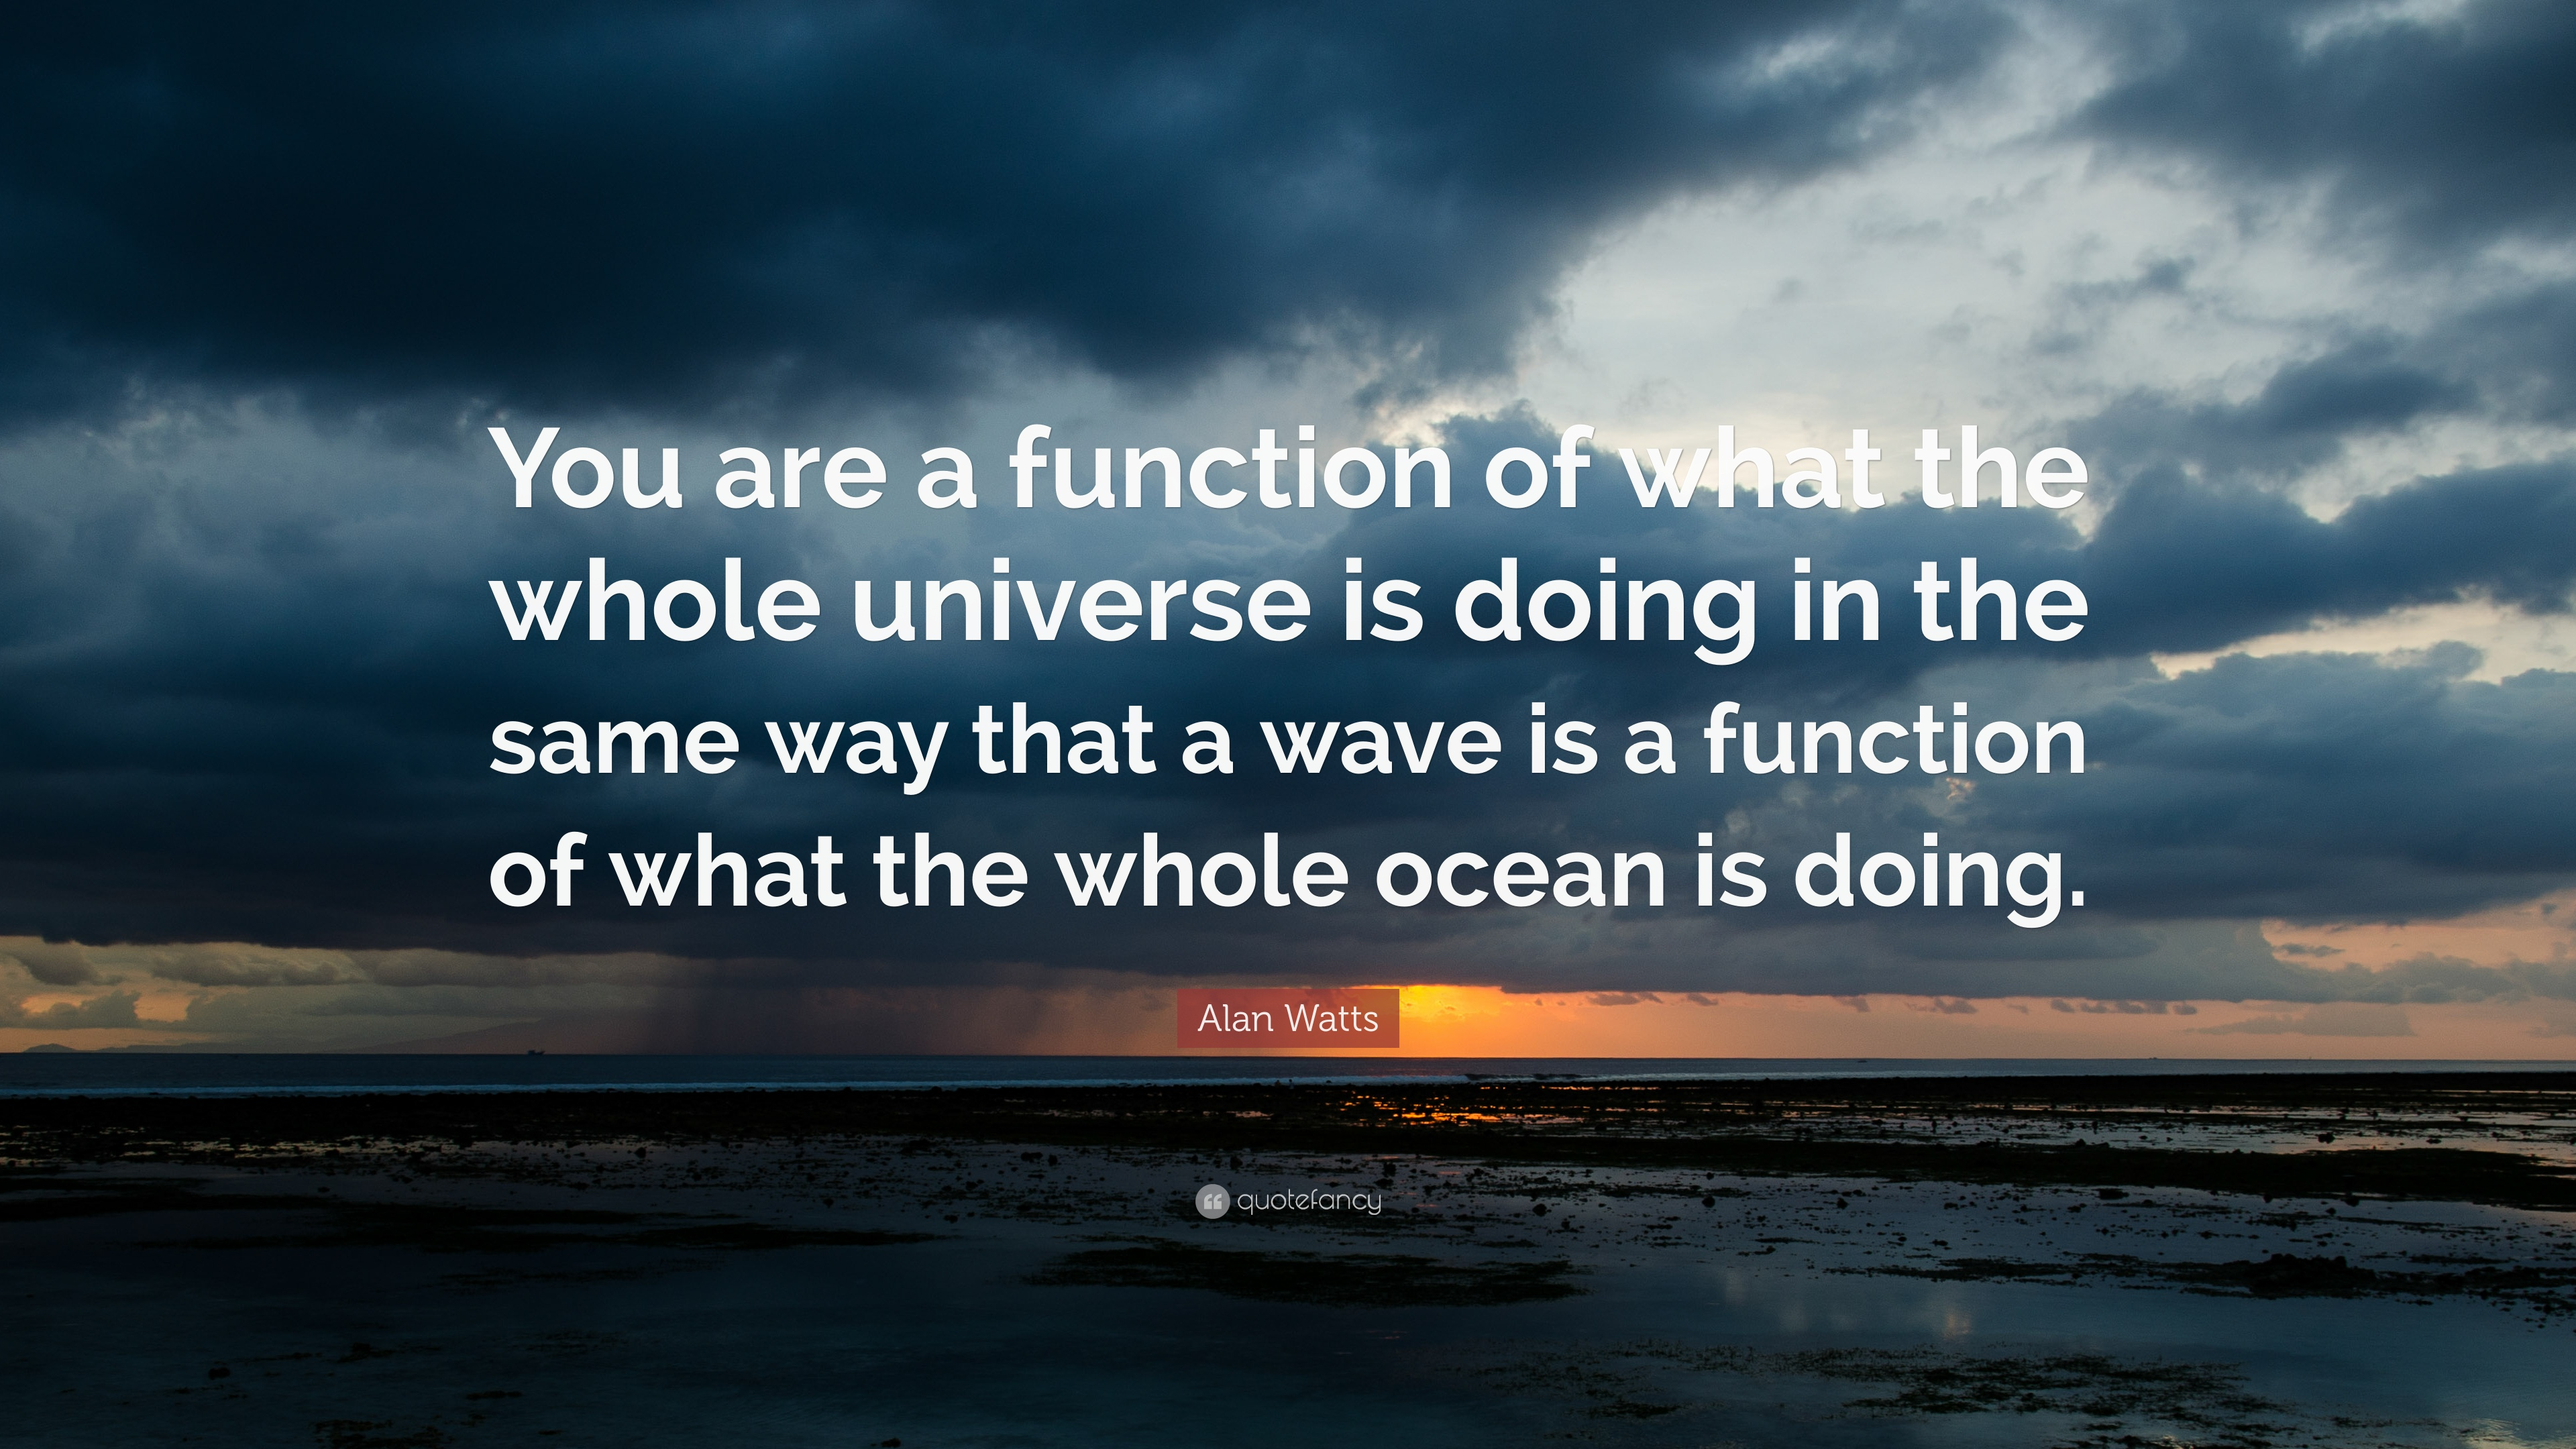 alan watts quote   u201cyou are a function of what the whole universe is doing in the same way that a